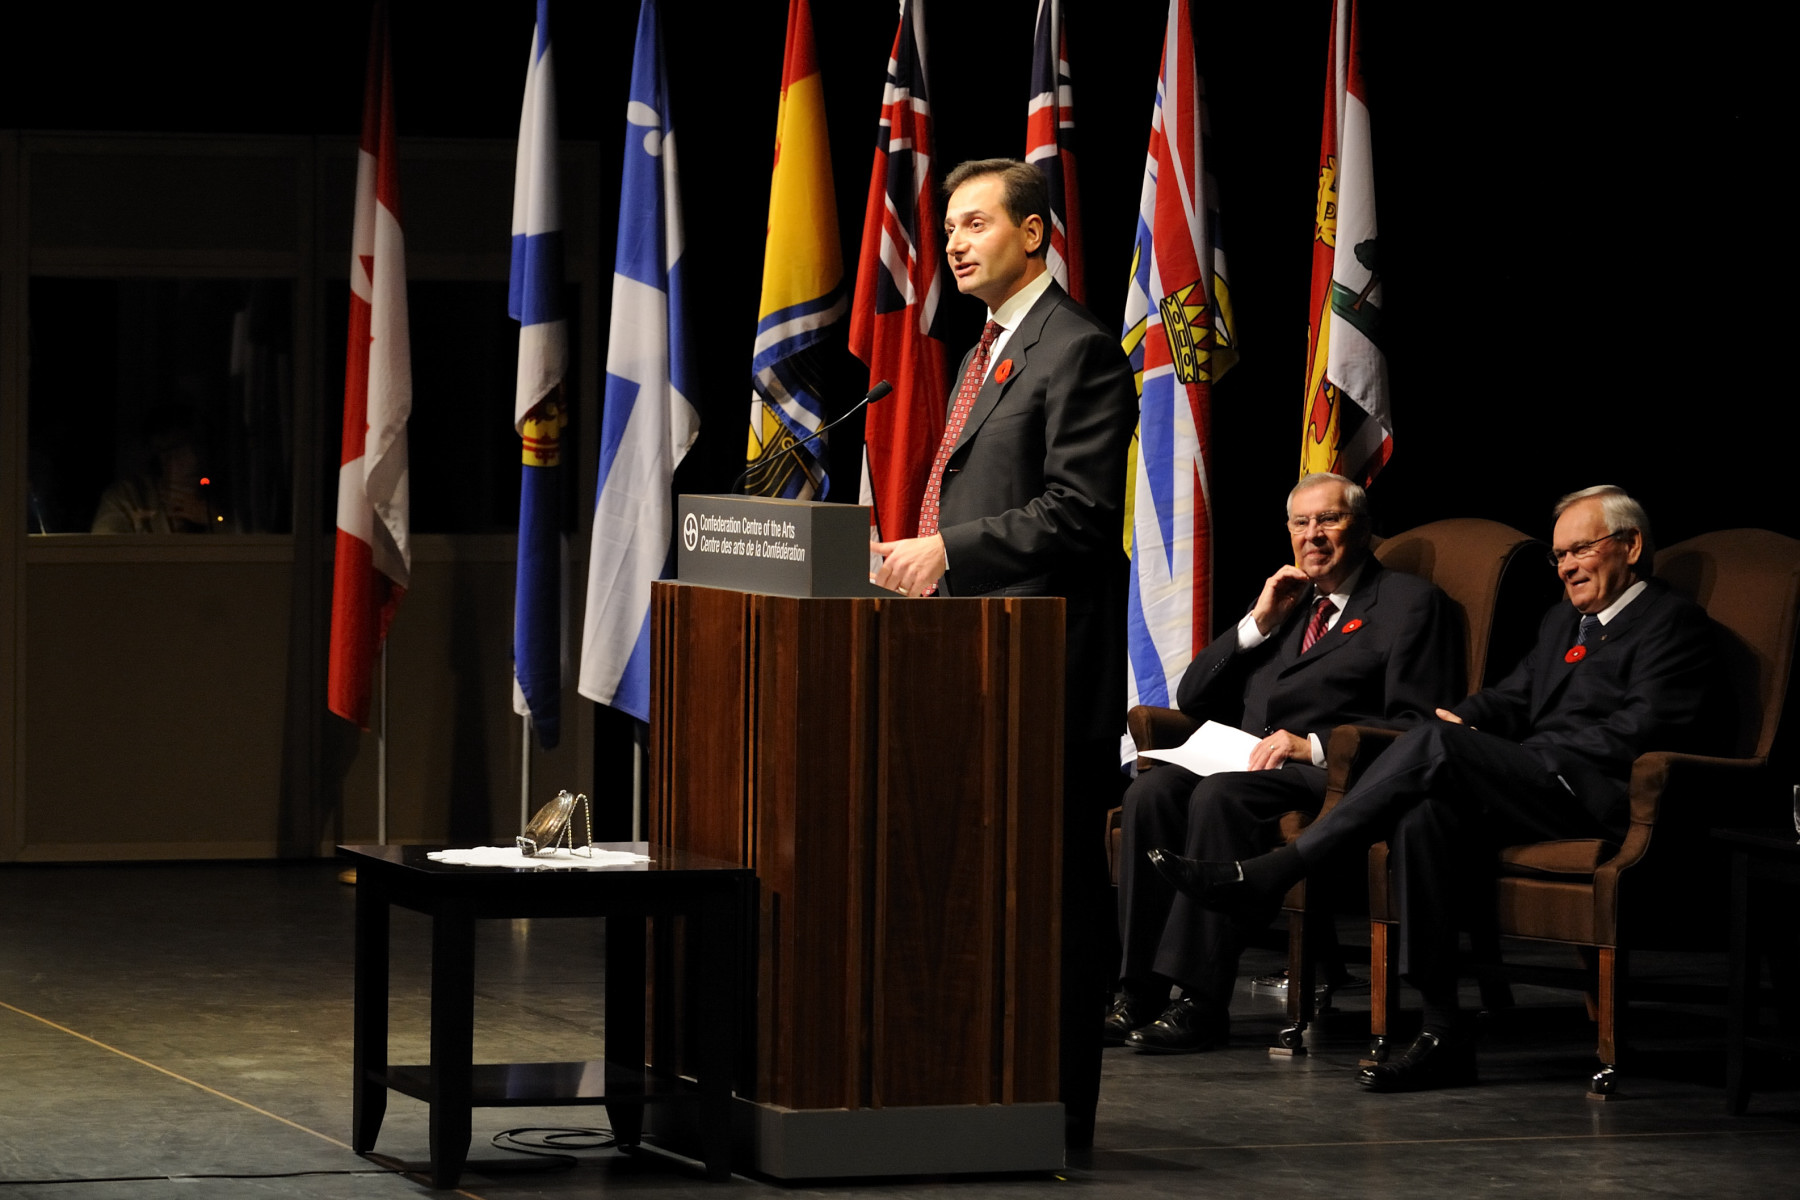 The Honourable Robert W.J. Ghiz, Premier of Prince Edward Island, paid tribute to the Governor General.